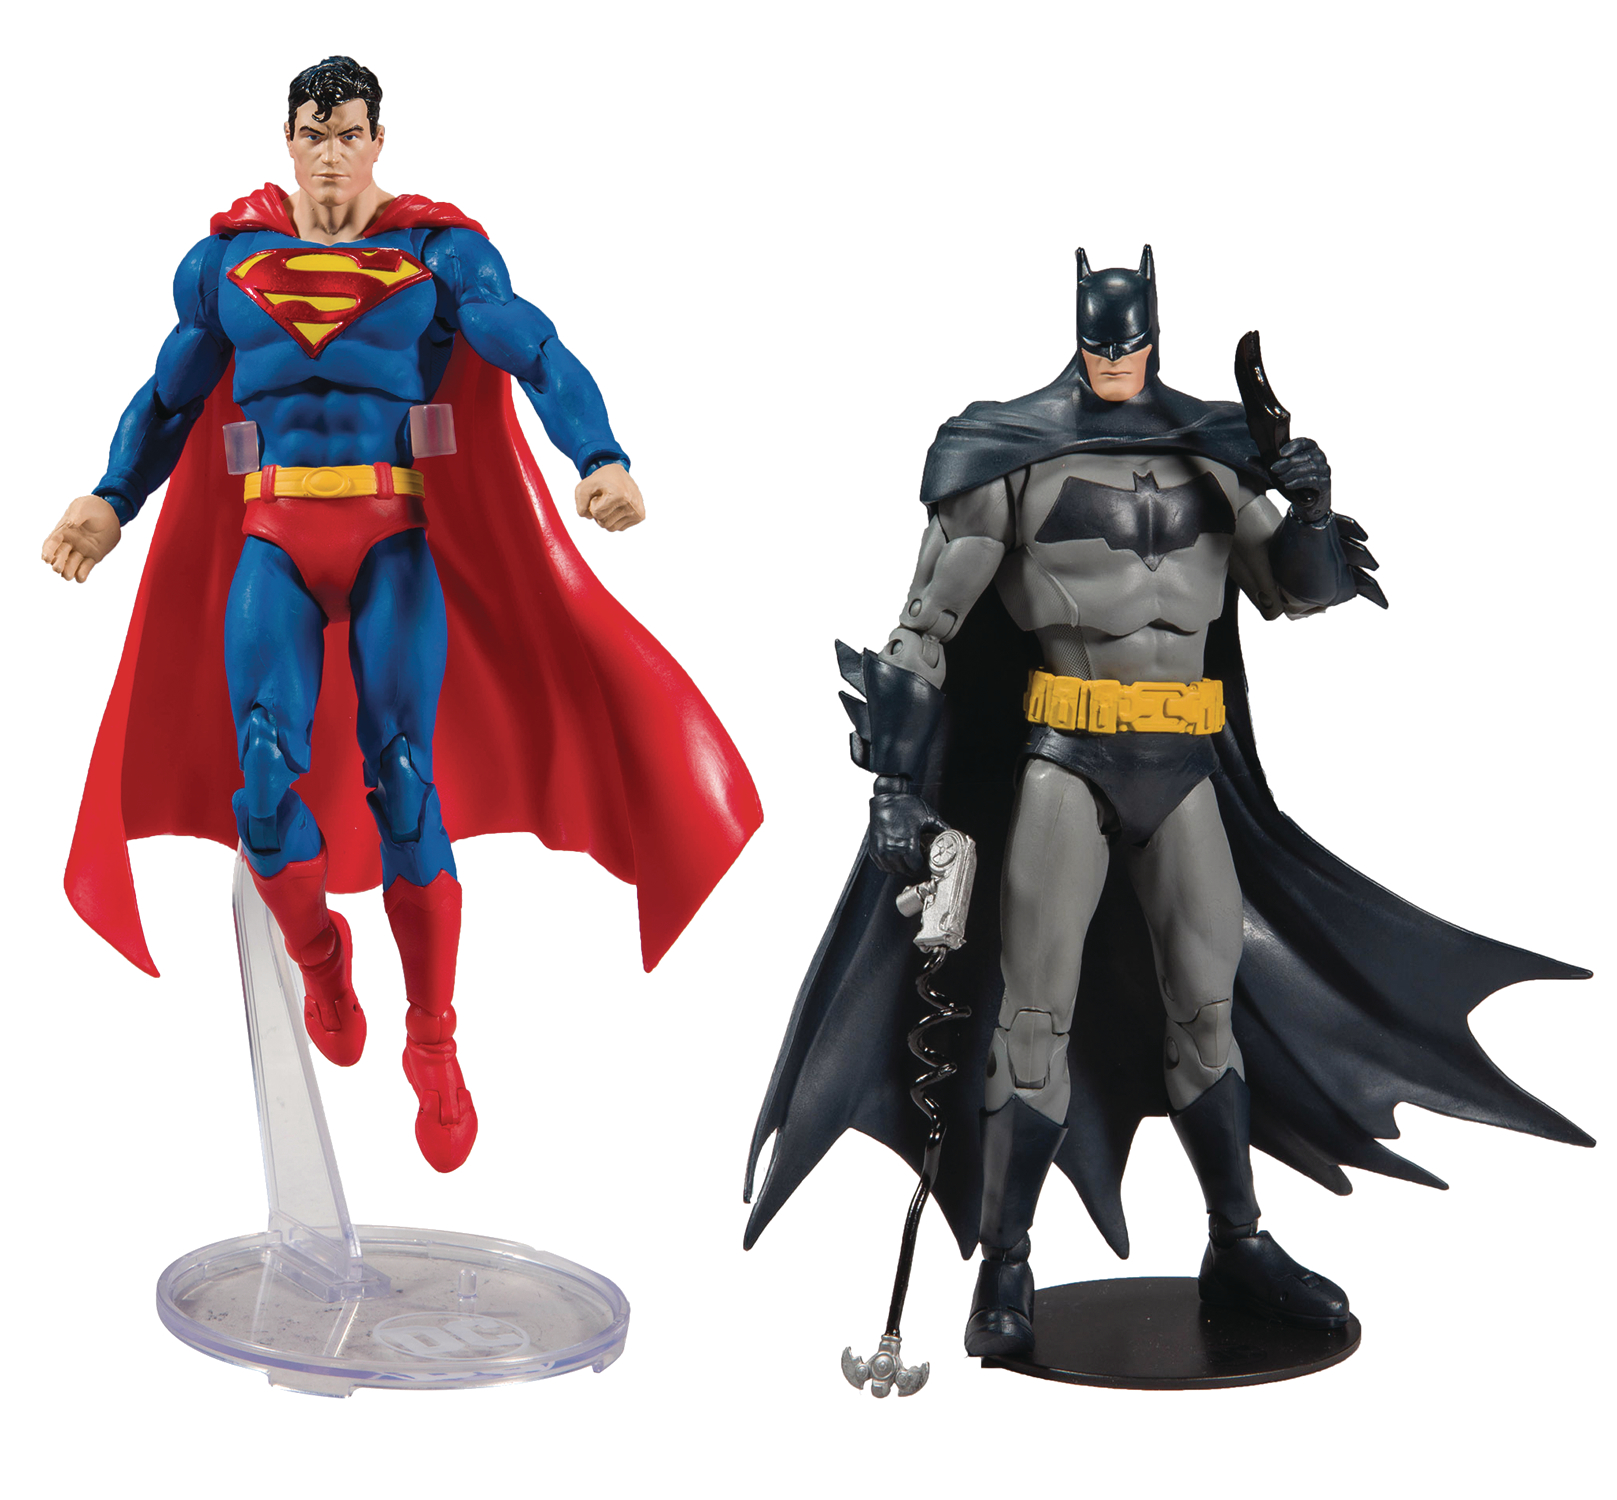 DC BATMAN/SUPERMAN 7IN SCALE WV1 AF ASST